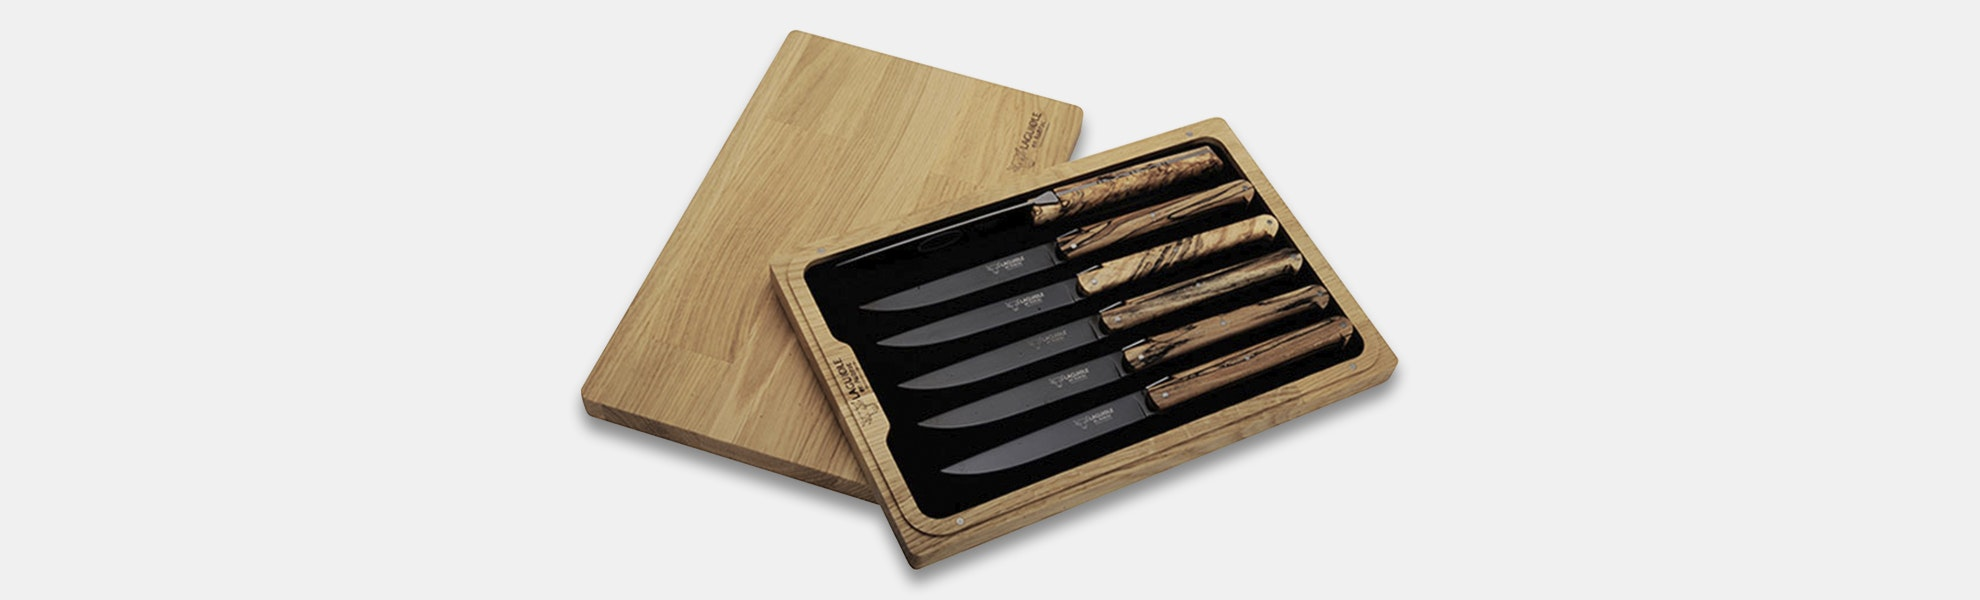 Laguiole En Aubrac L' Ancestral Steak Knives